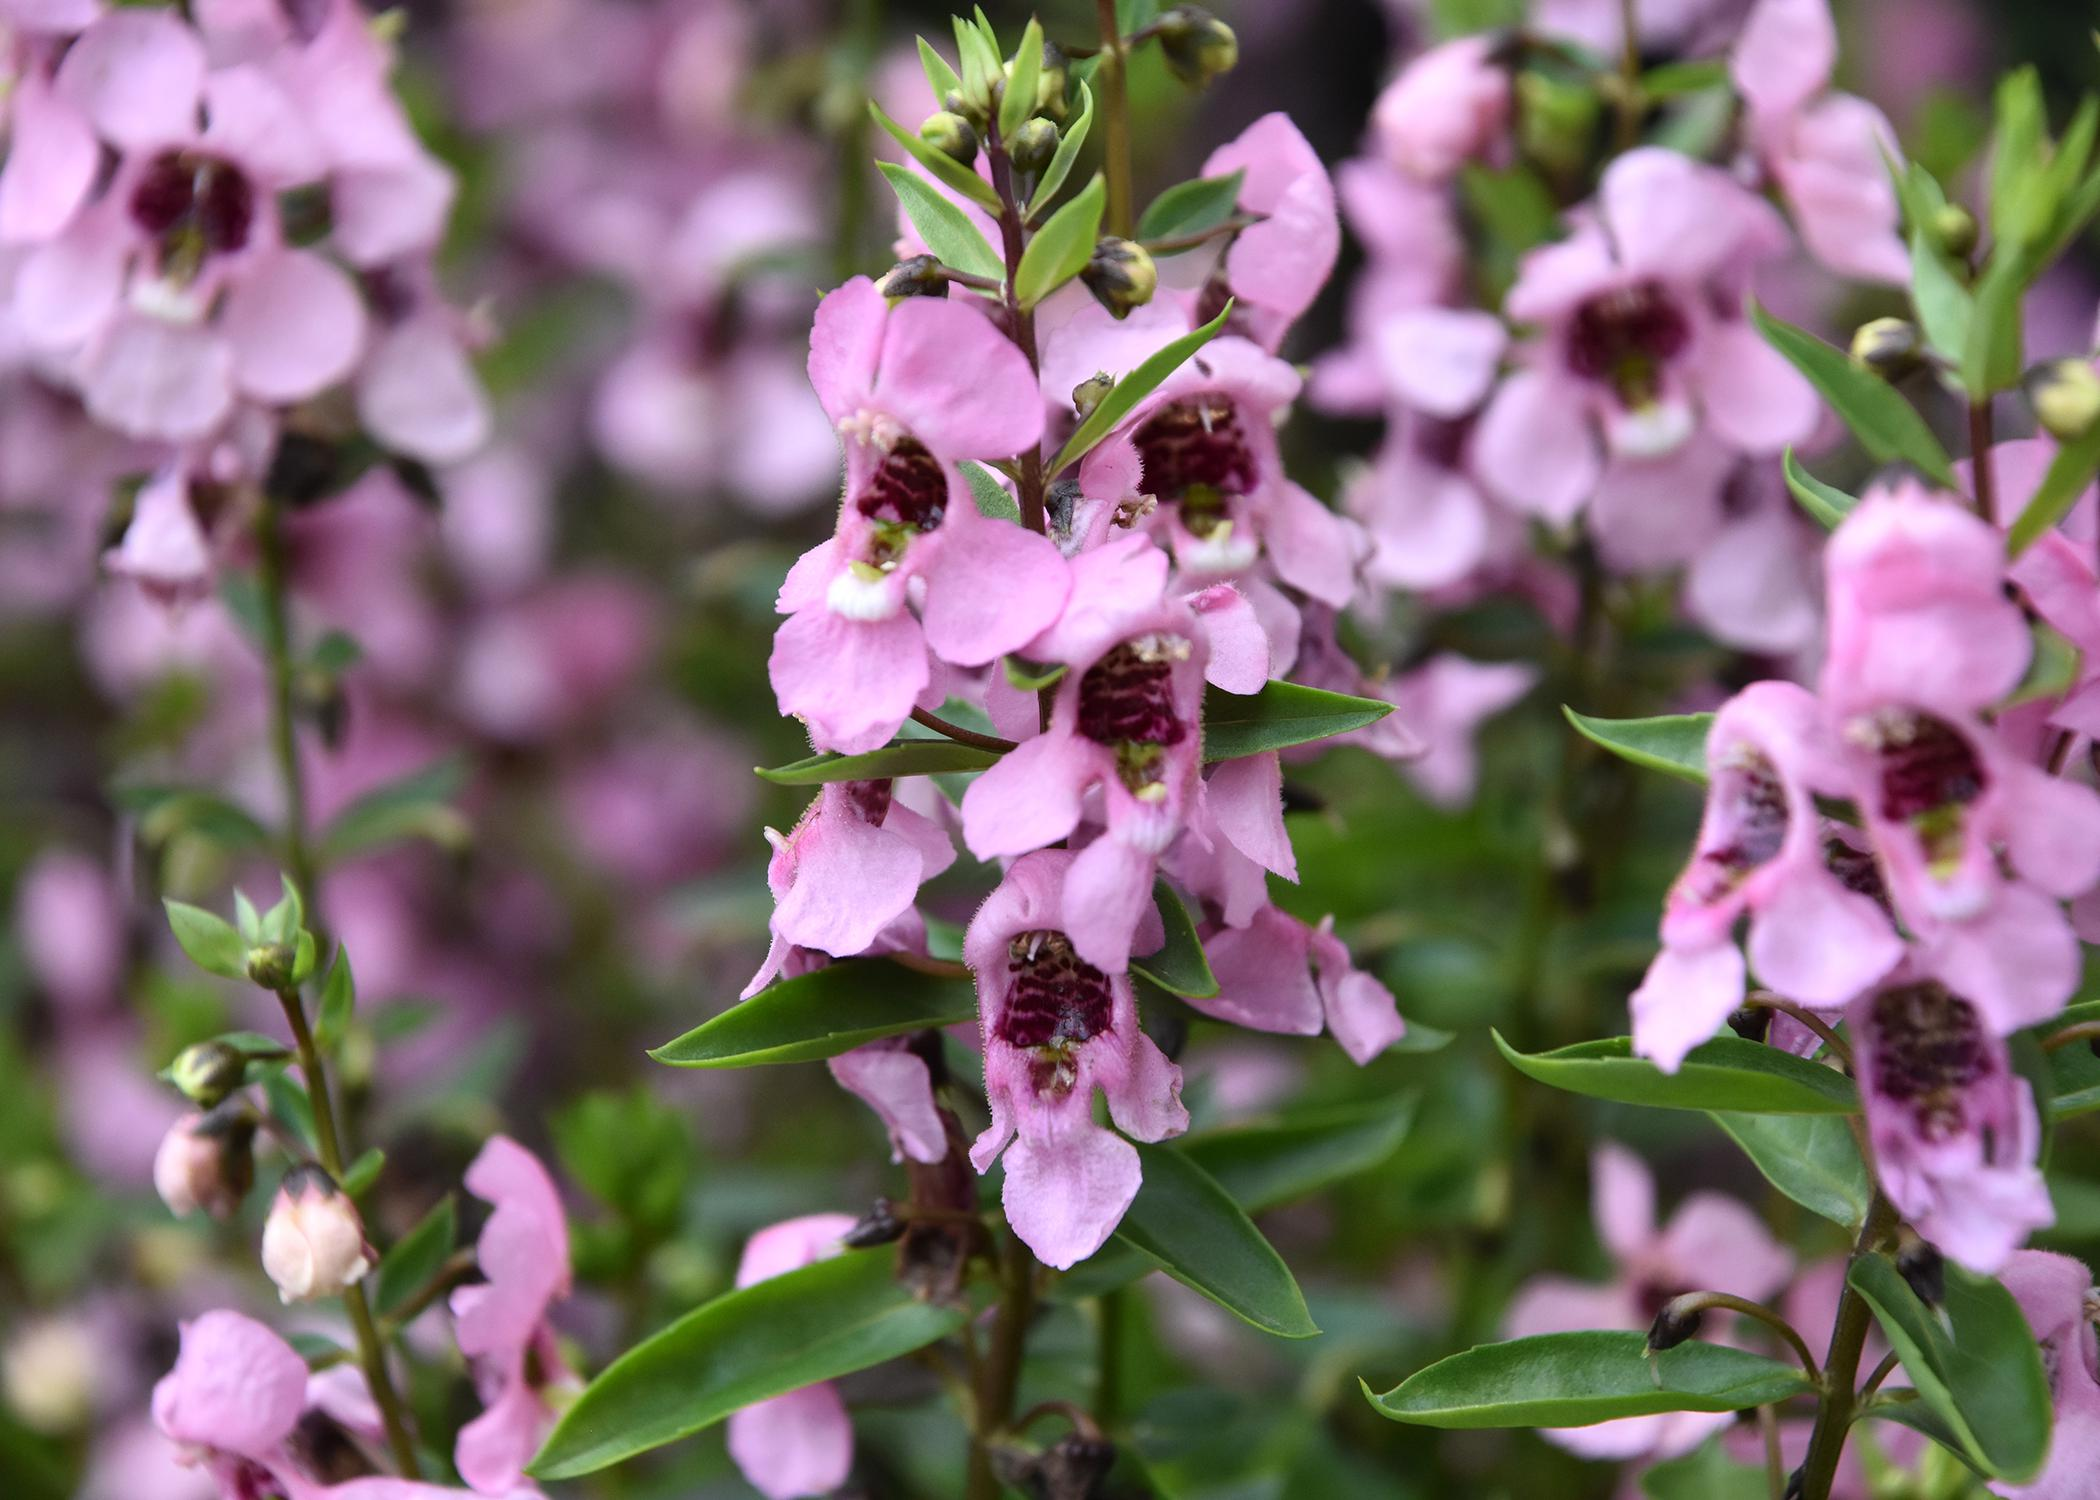 The Angelonia Serenita series has compact plants with vibrant colors, such as this Serenita Pink that was named an All-America Selection Winner in 2014. (Photo by MSU Extension Service/Gary Bachman)